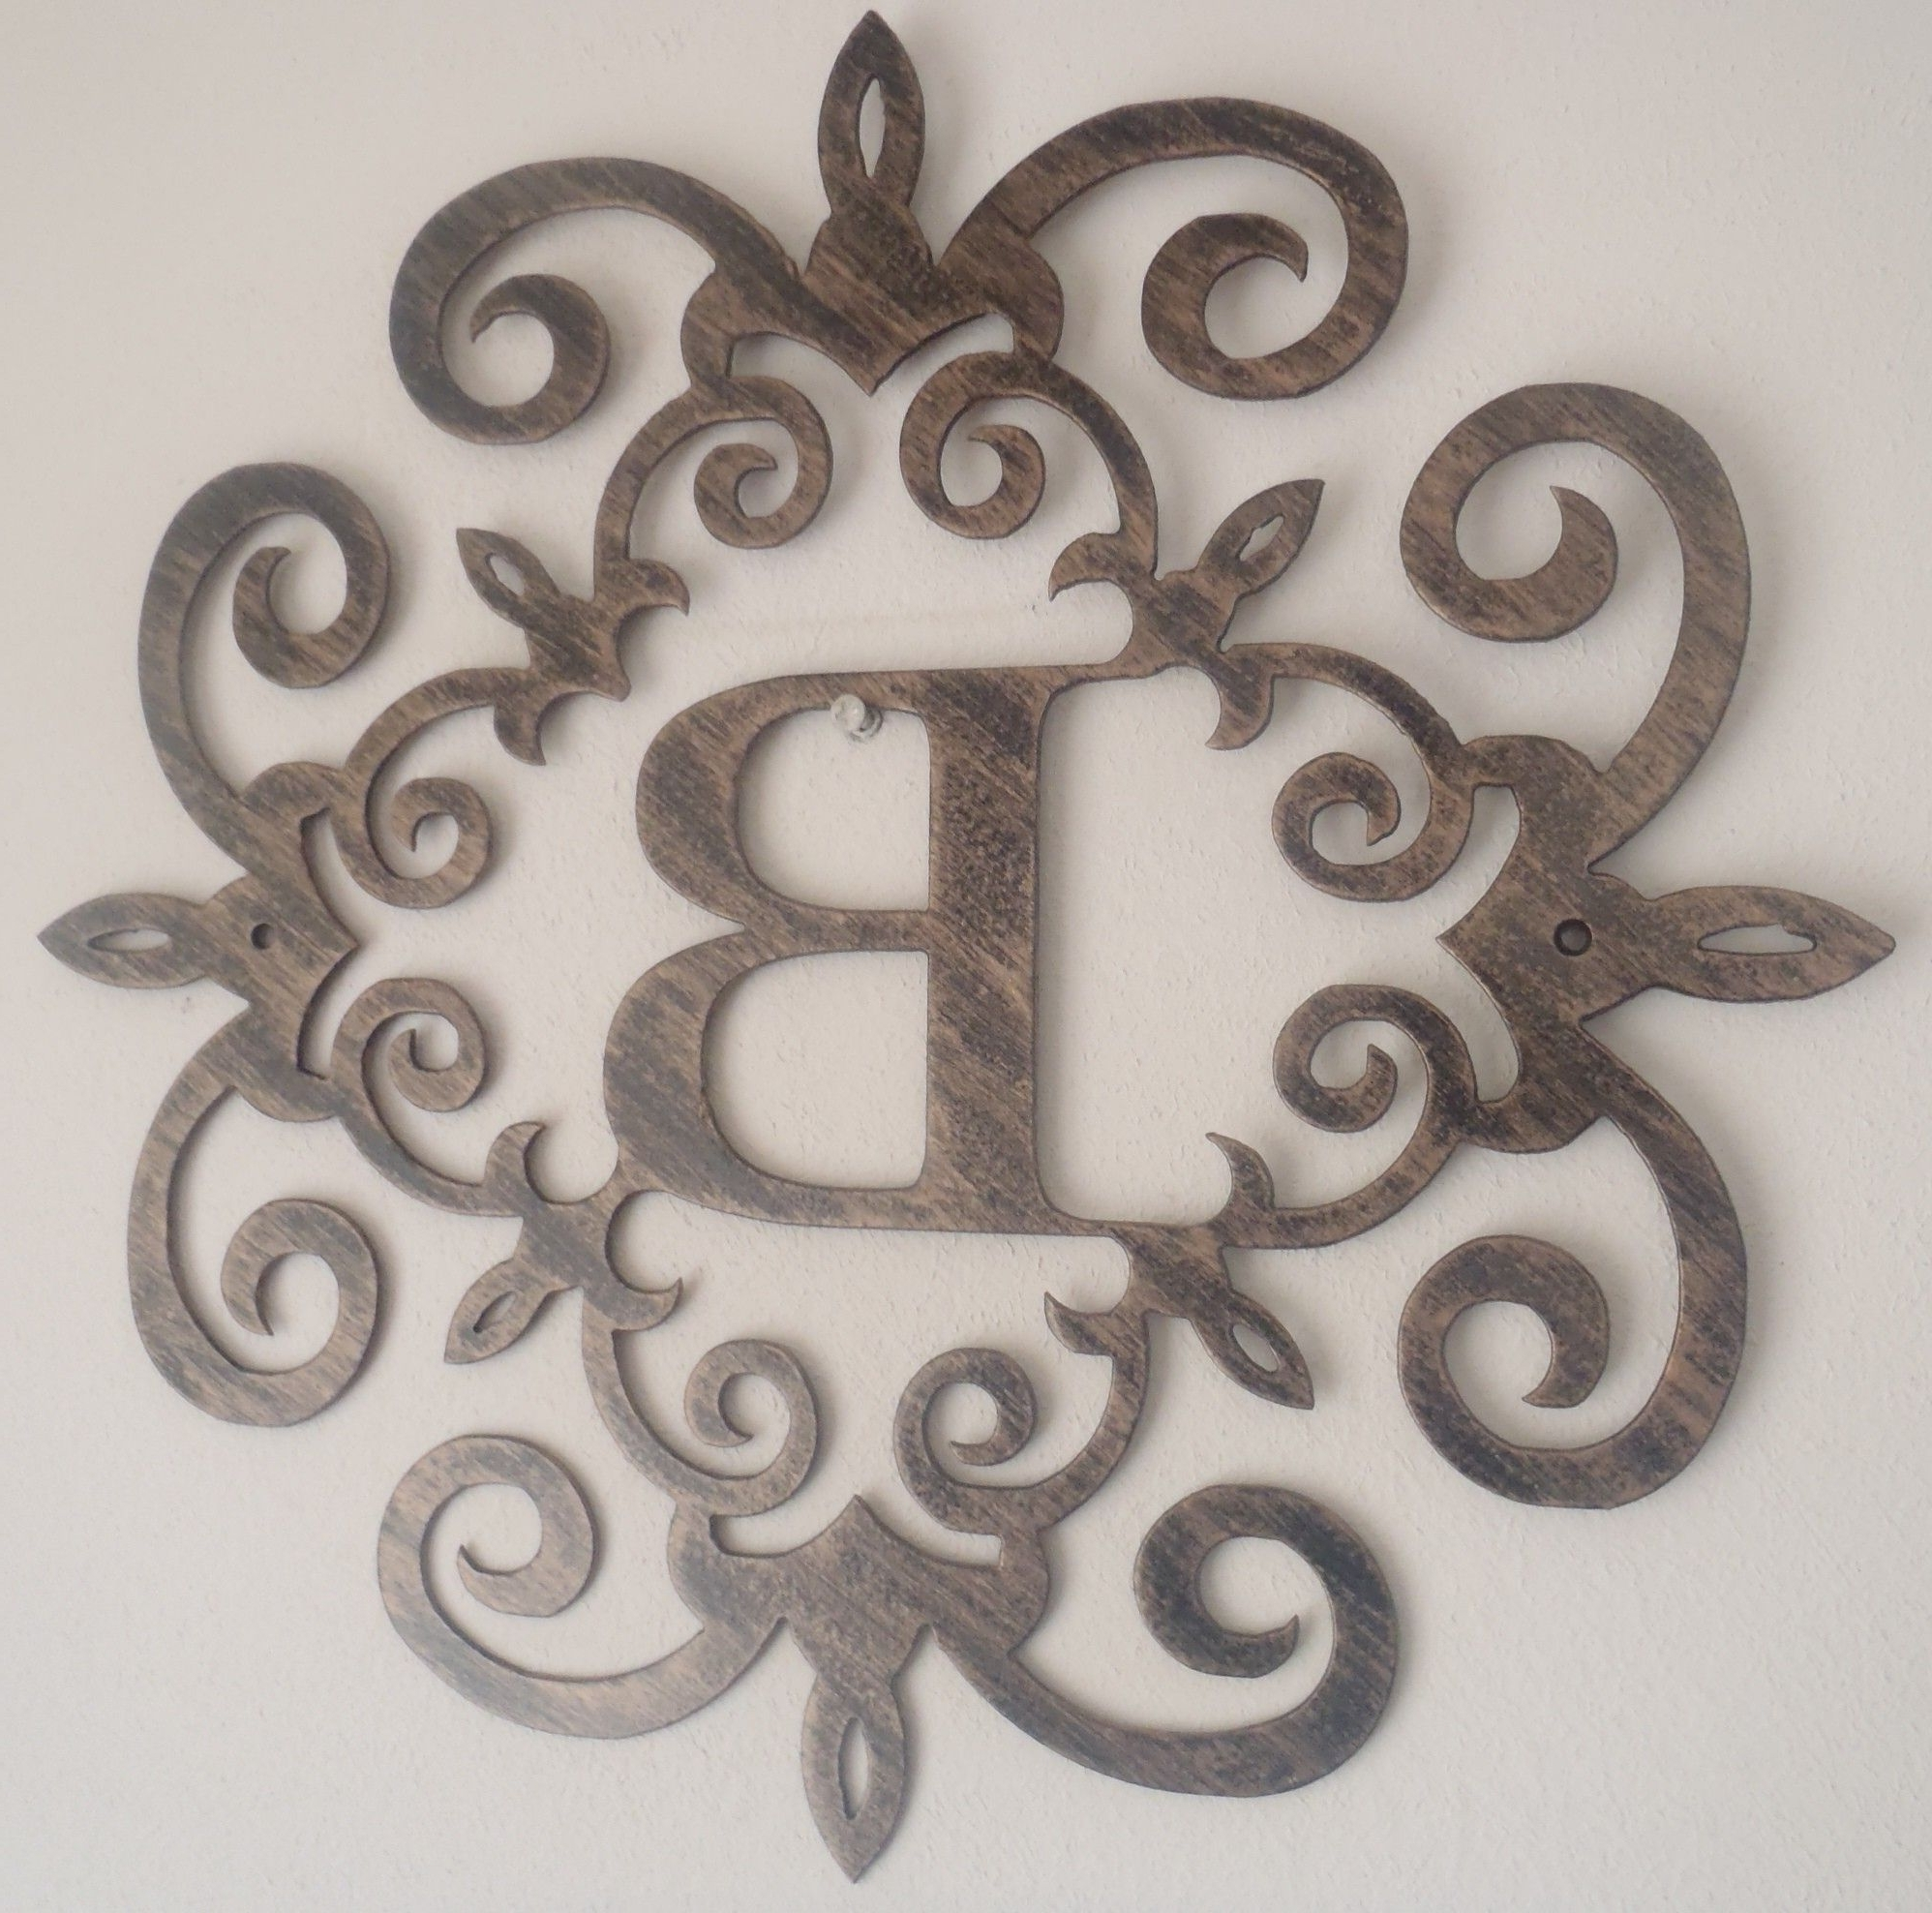 Trendy Family Initial, Monogram Inside A Metal Scroll With B Letter, Wall With Regard To Metal Letter Wall Art (View 2 of 15)